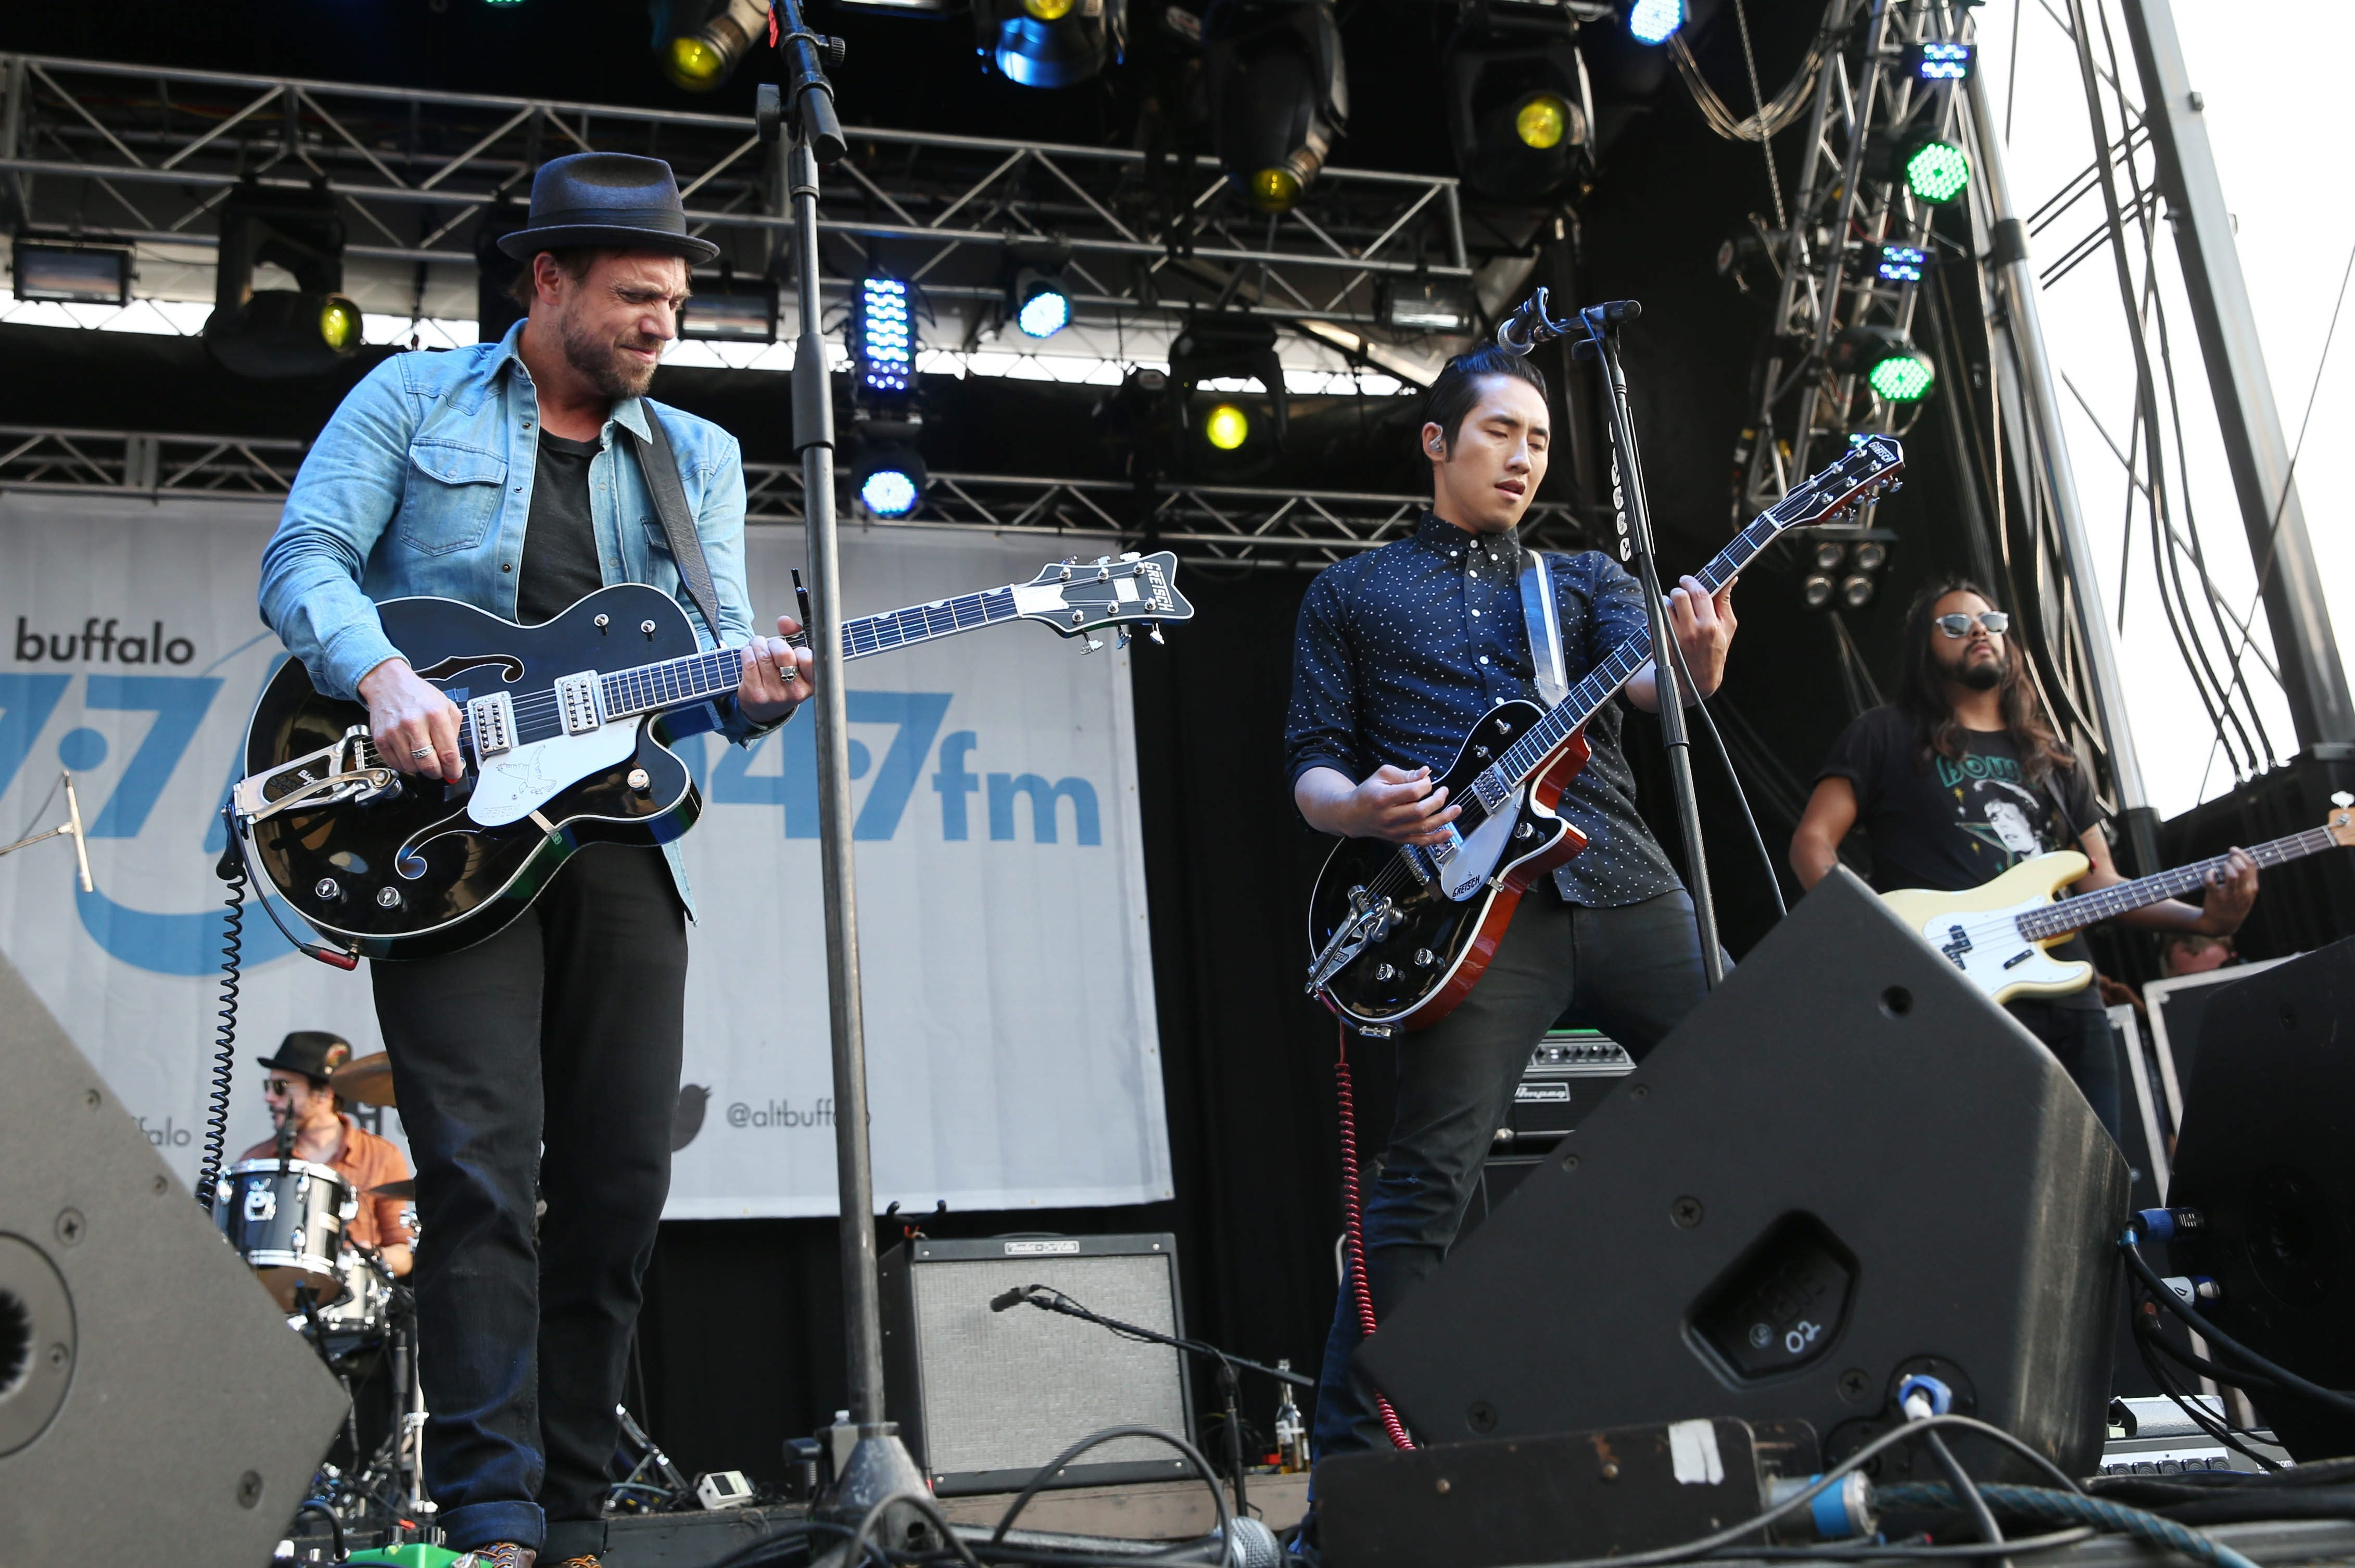 Airborne Toxic Event was part of  July's Kerfuffle at Canalside.